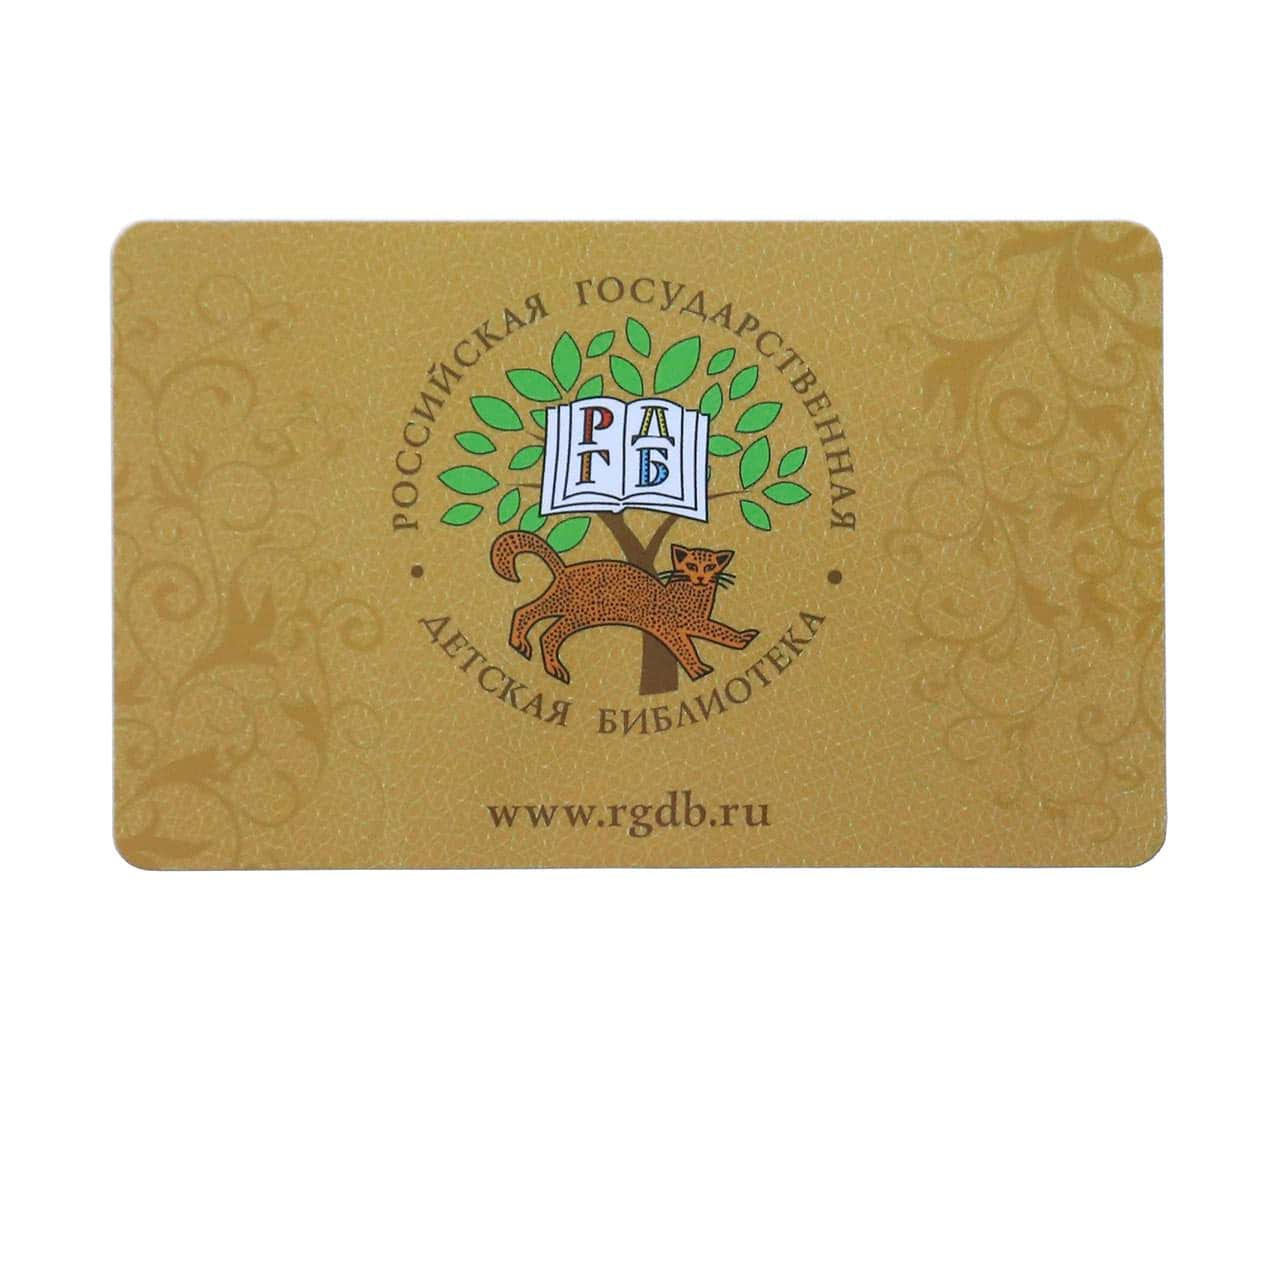 ISSI 4469 CHIP RFID CARD From Xinyetong